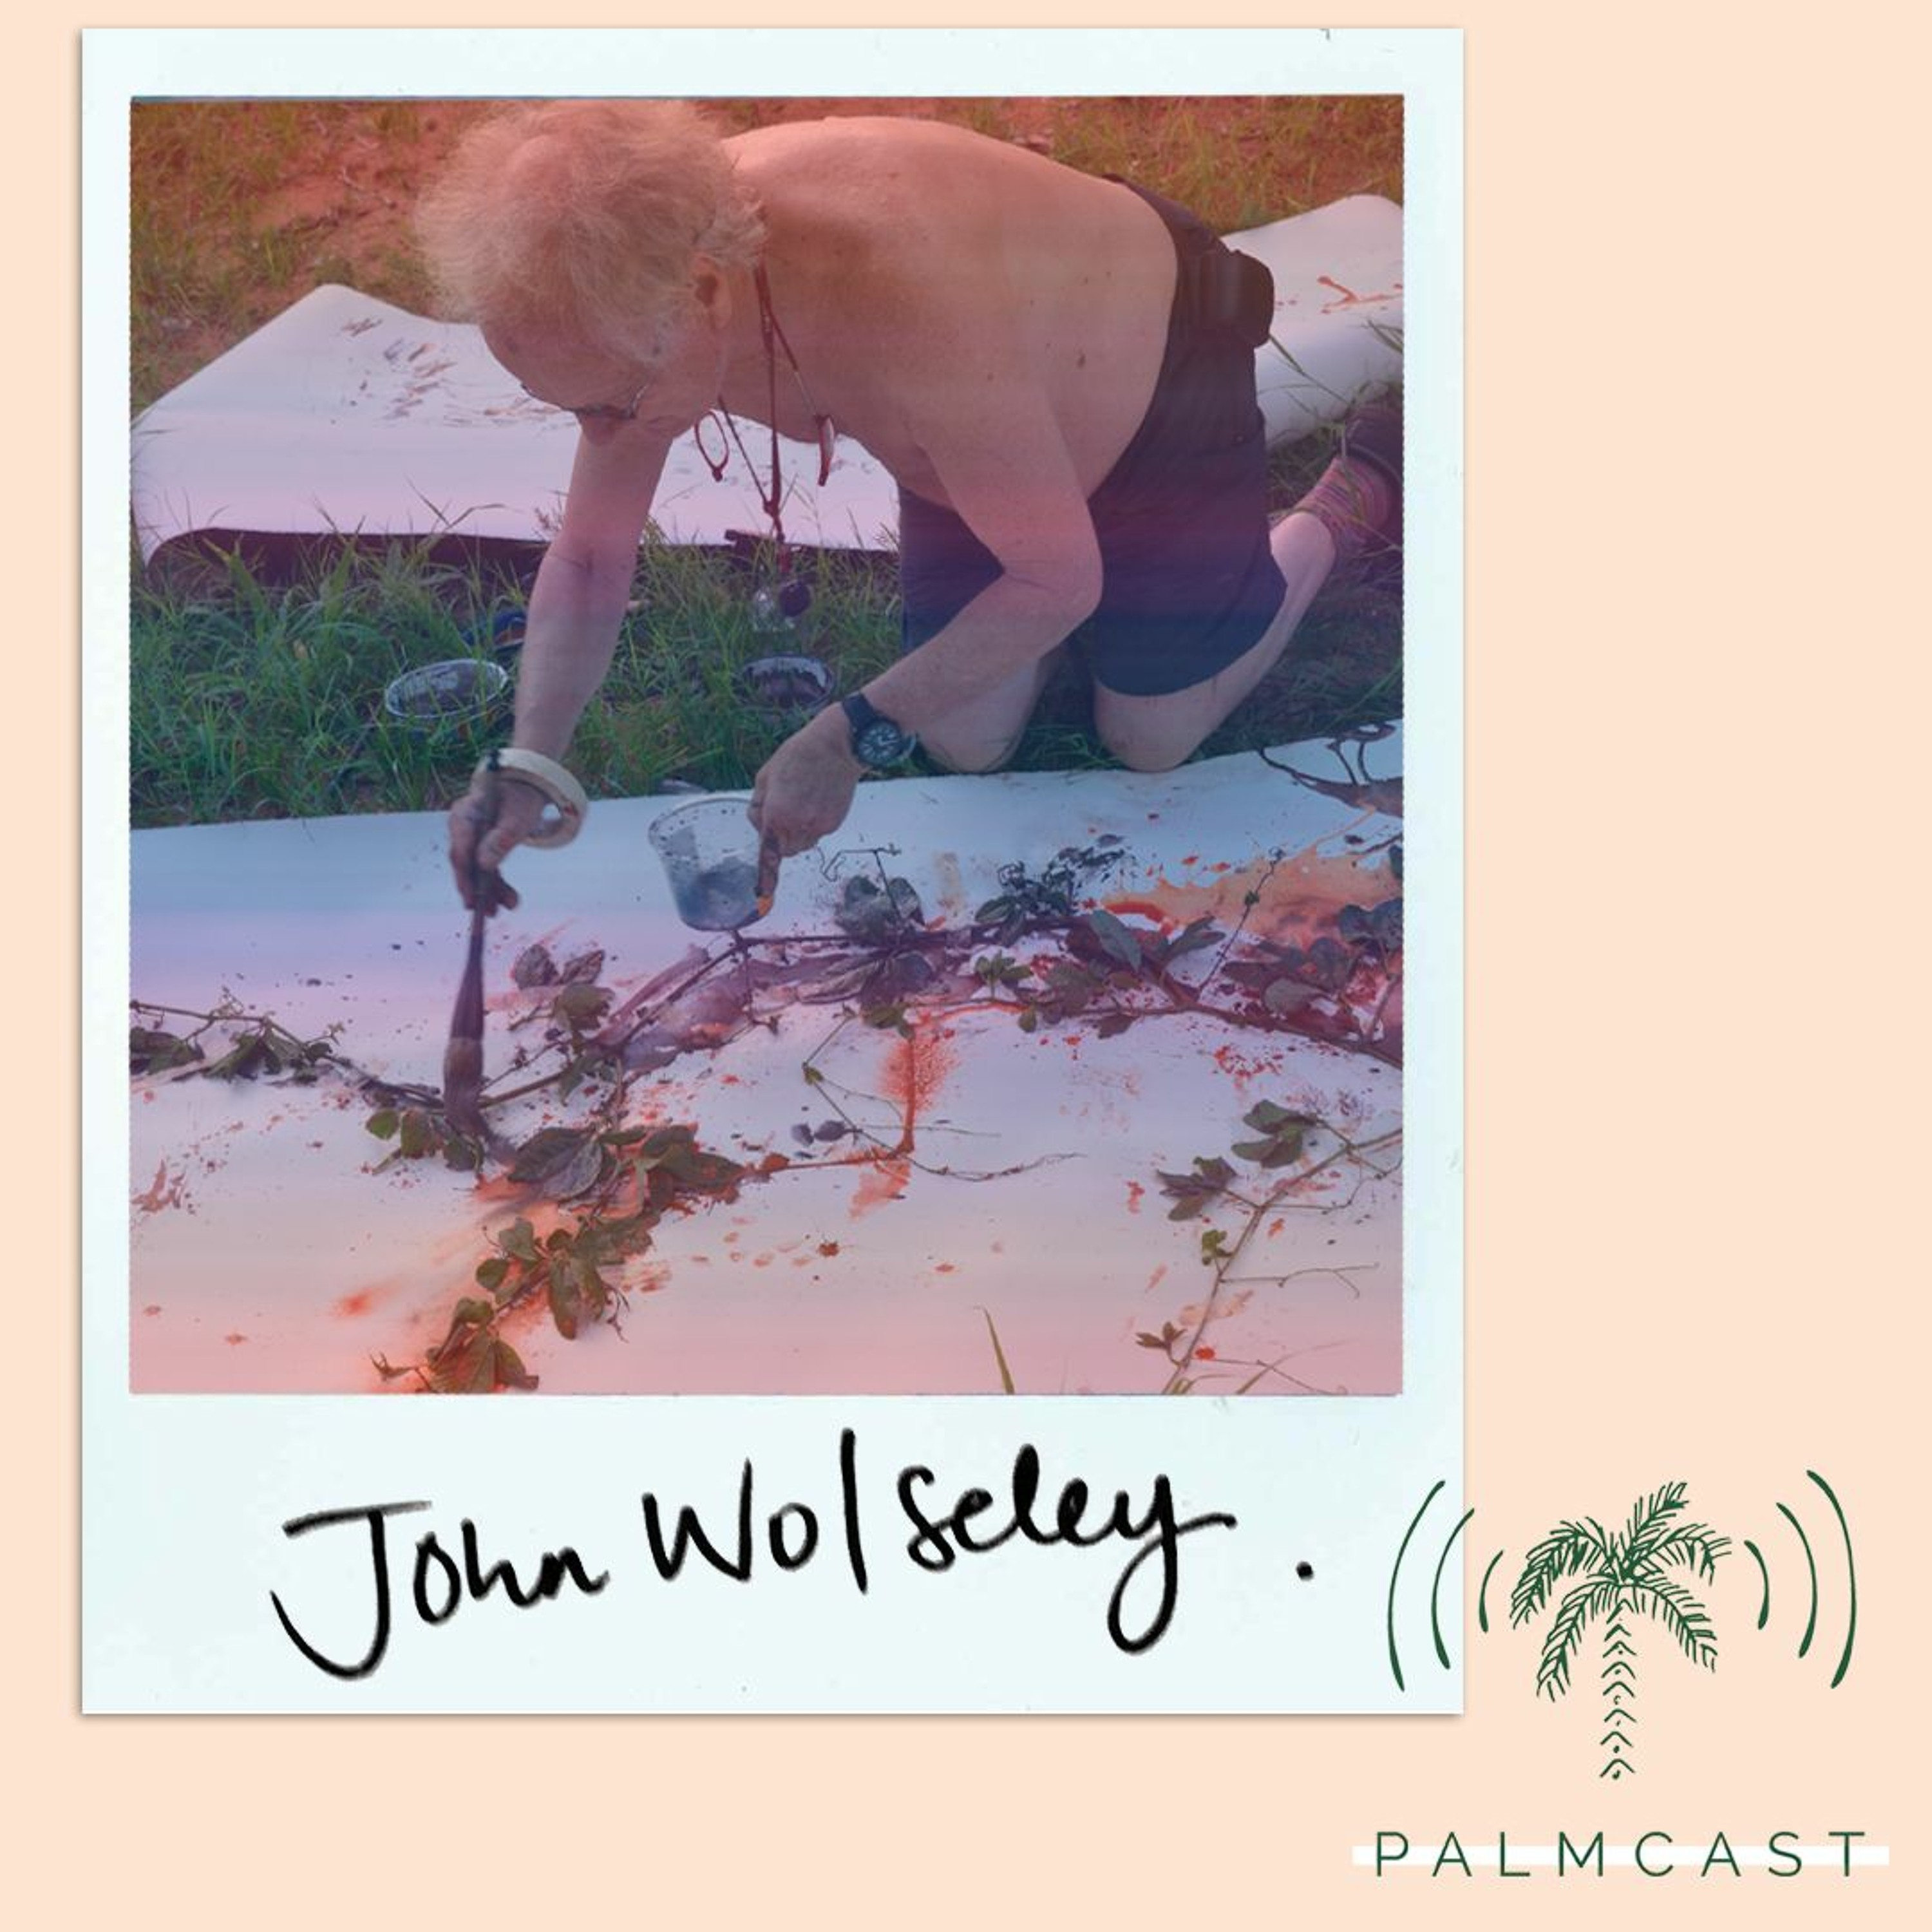 John Wolseley — Seeing nature through art